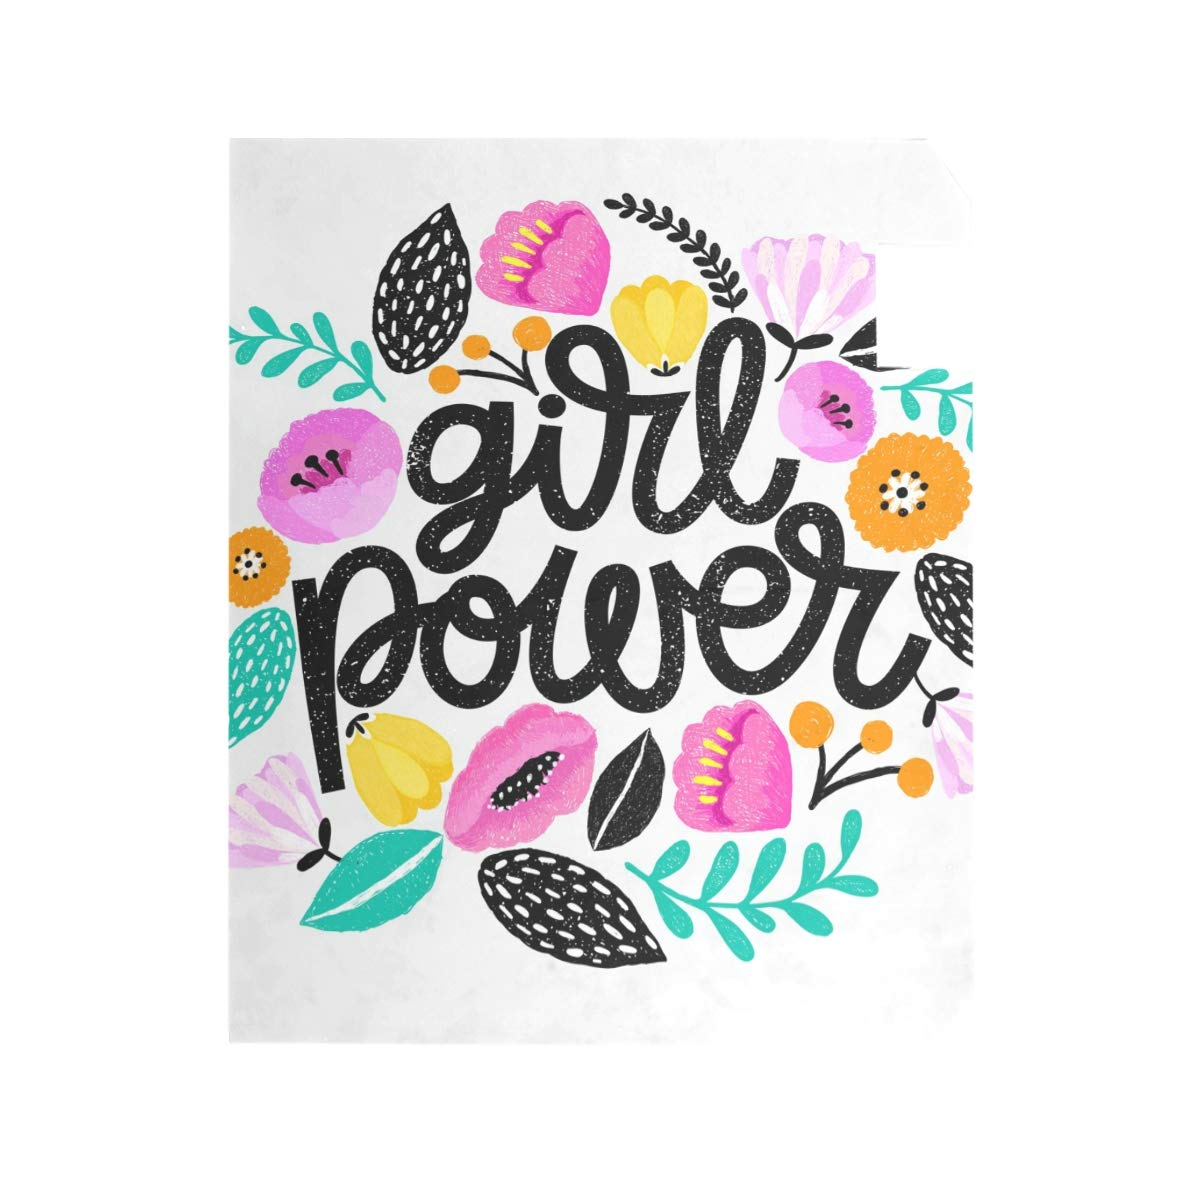 TaTaisu Mailbox Covers and Wraps Girl Power Custom Magnetic Mail Box Cover Vinyl Home Garden Decor Standard Size